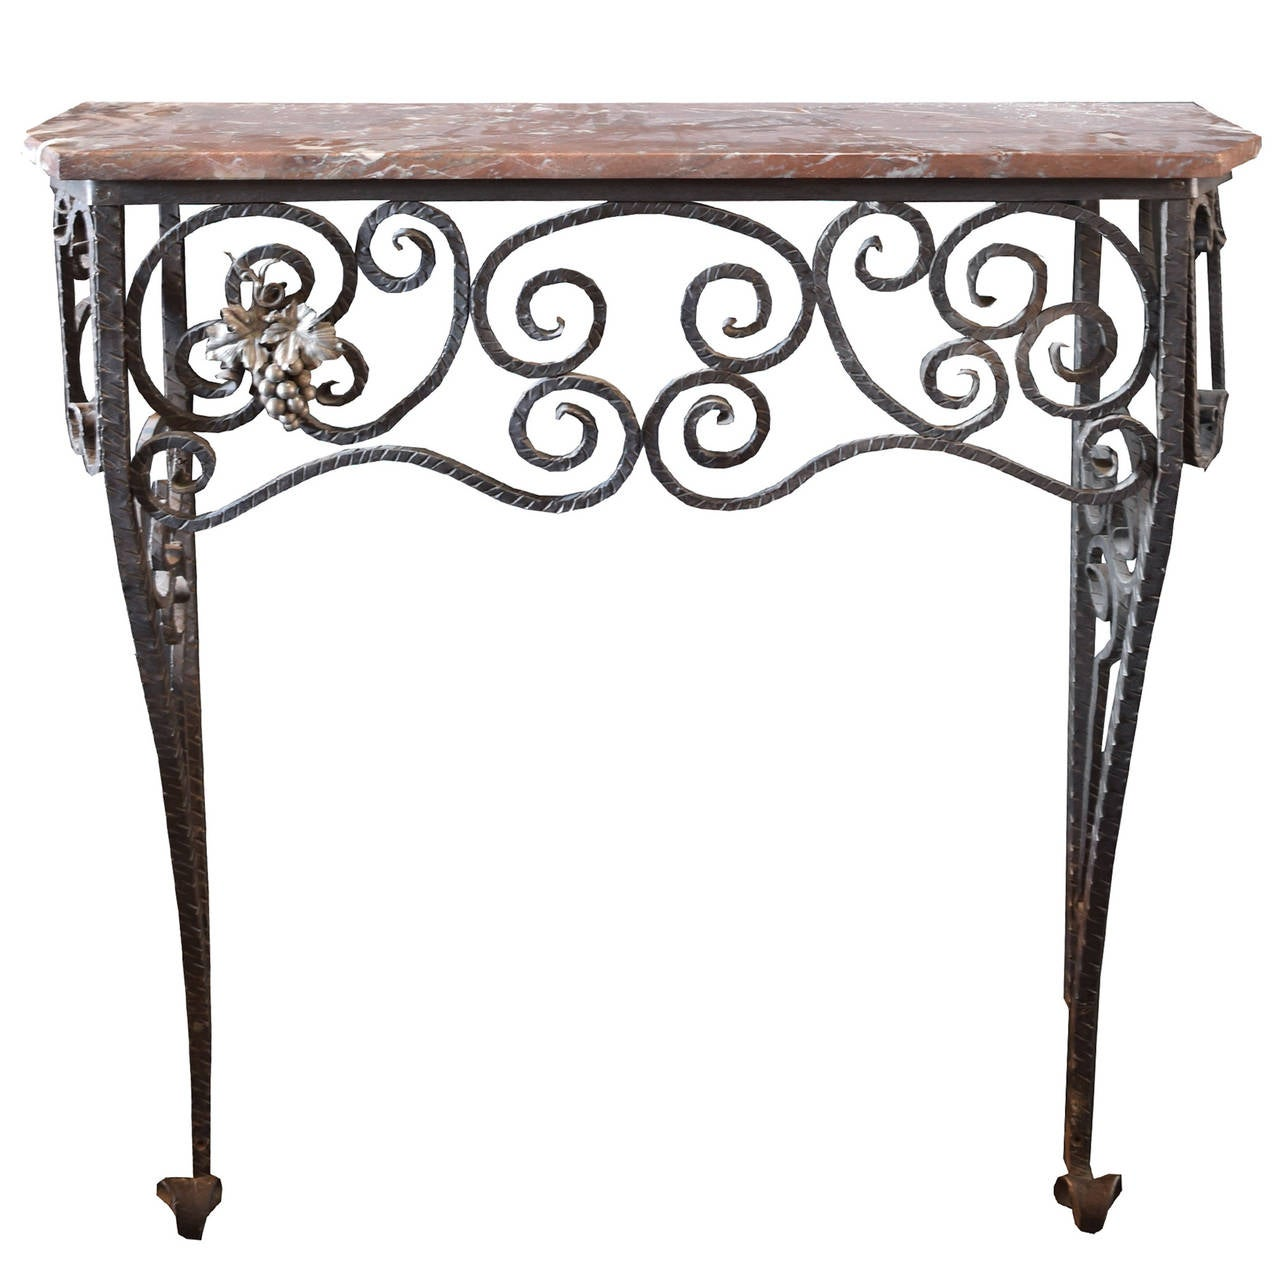 Fer forge console table with marble top for sale at 1stdibs for Table bar fer forge